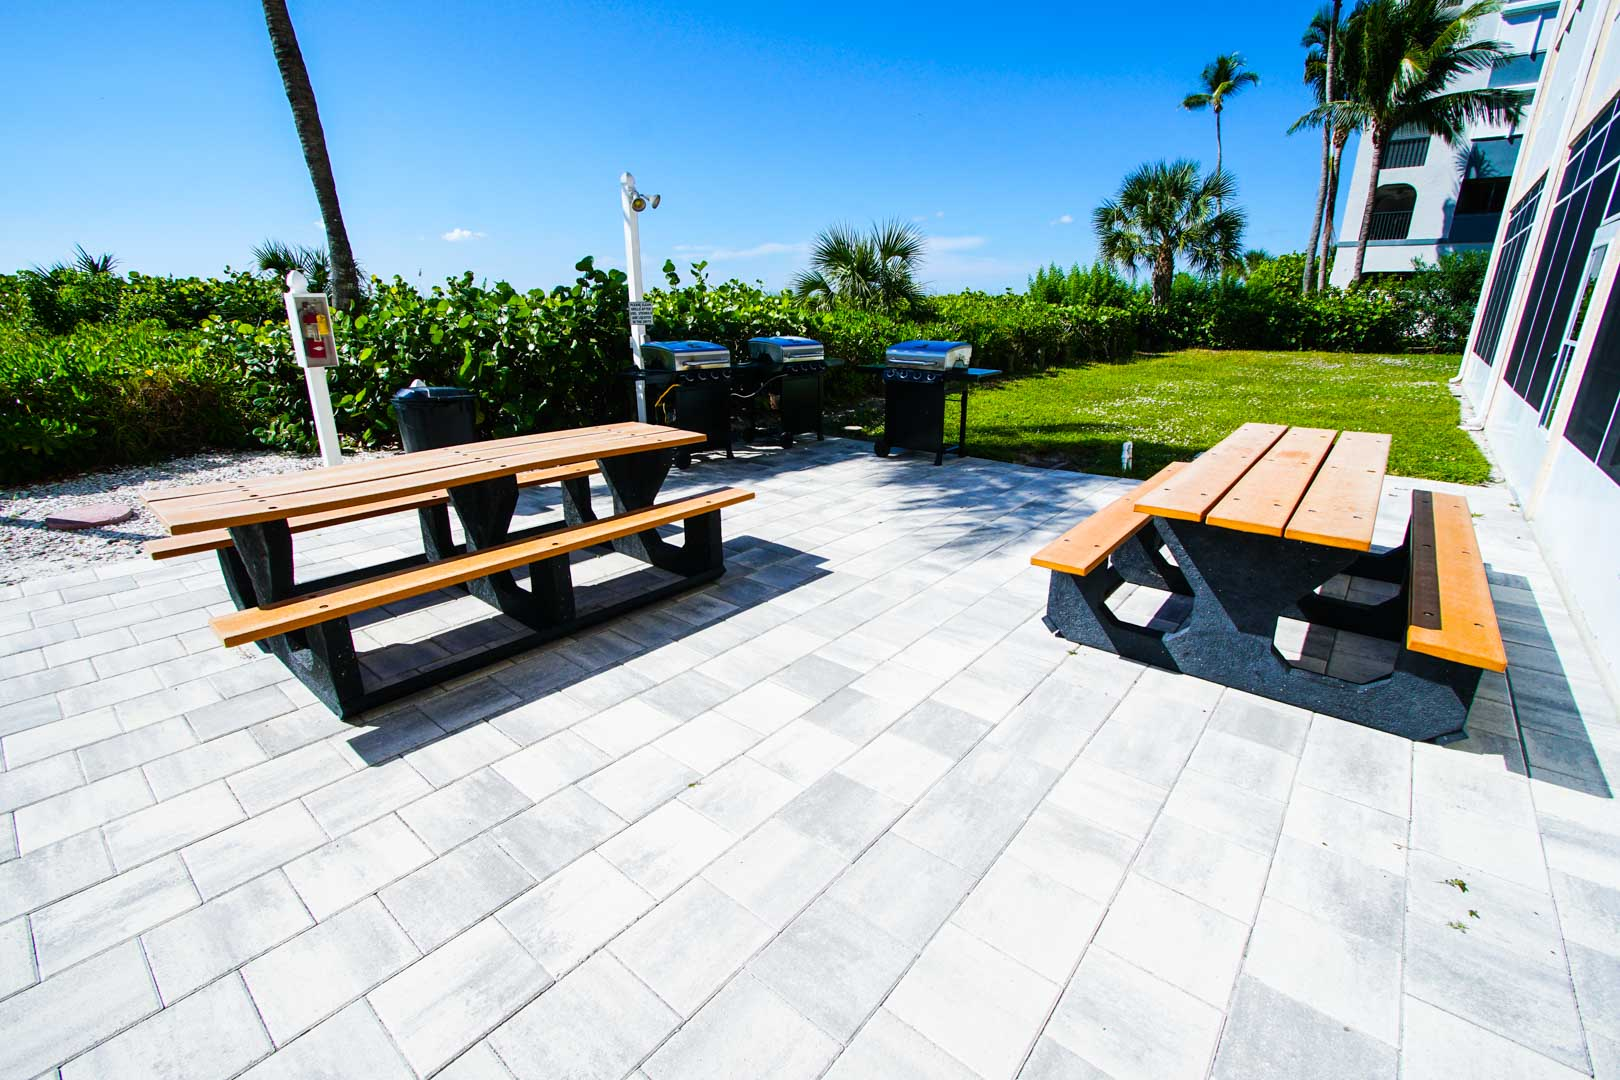 BBQ grills by the beach at VRI's Windward Passage Resort in Fort Myers Beach, Florida.